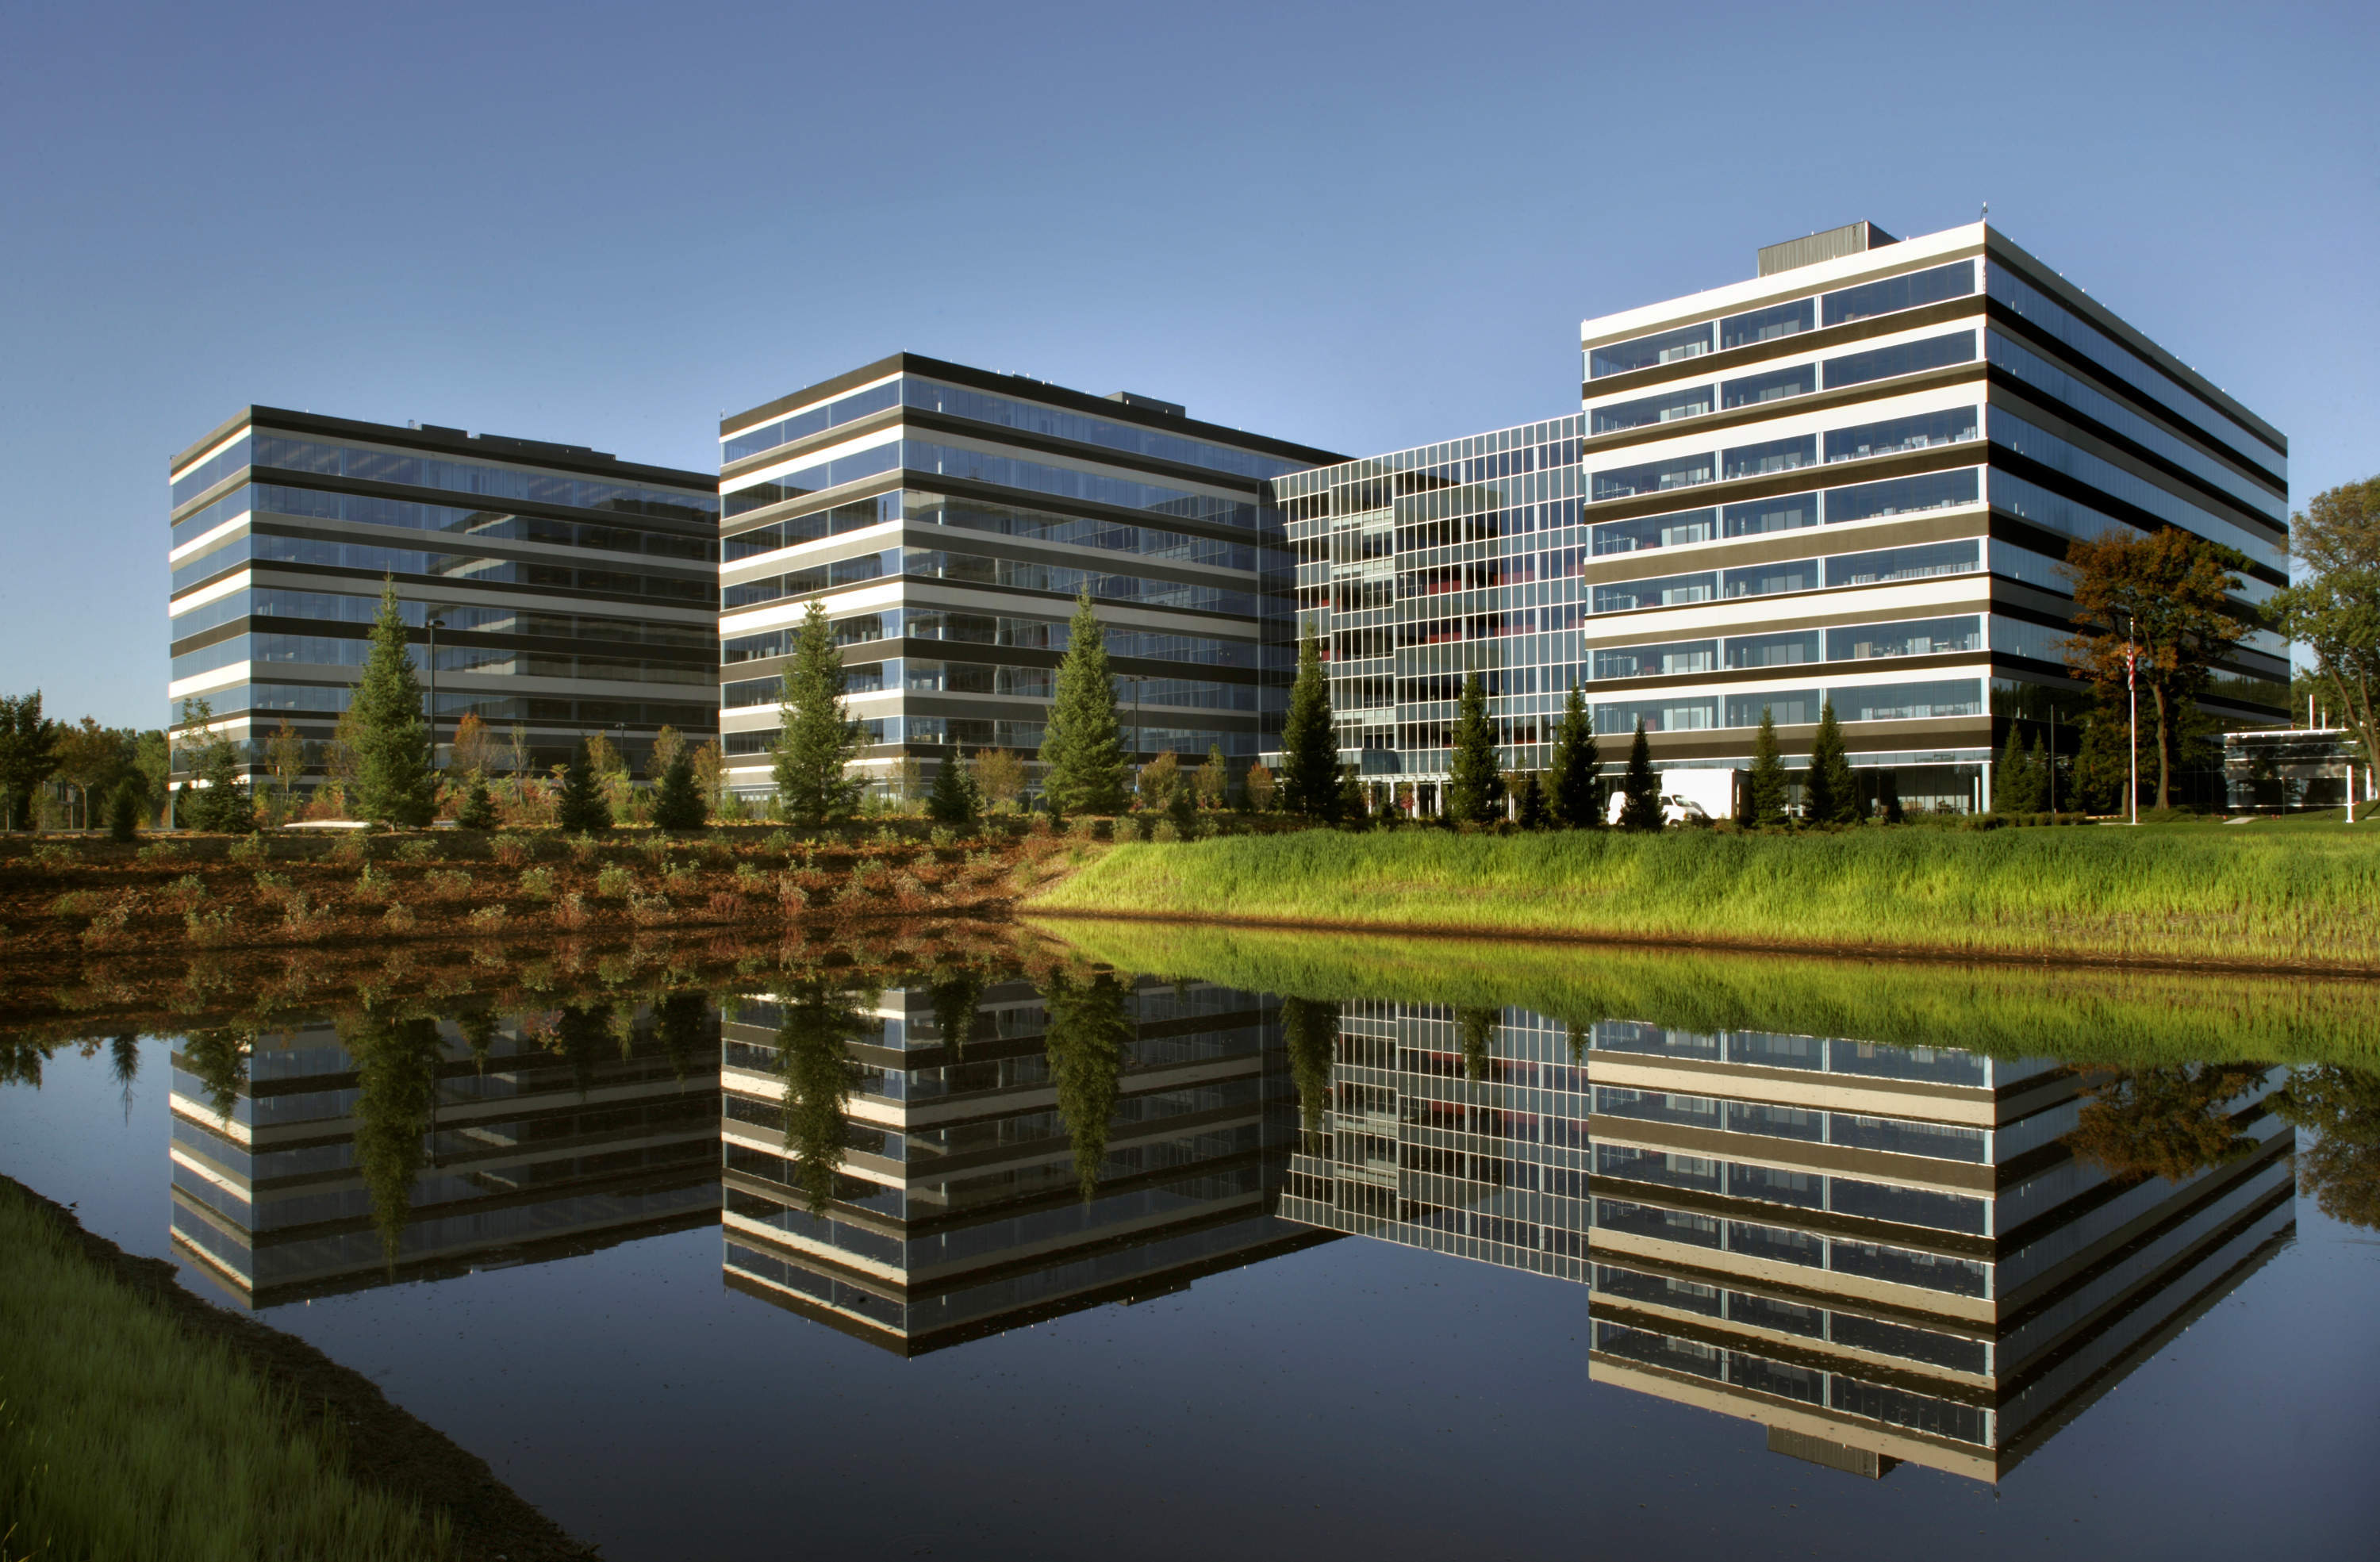 Medtronic Mounds View Campus